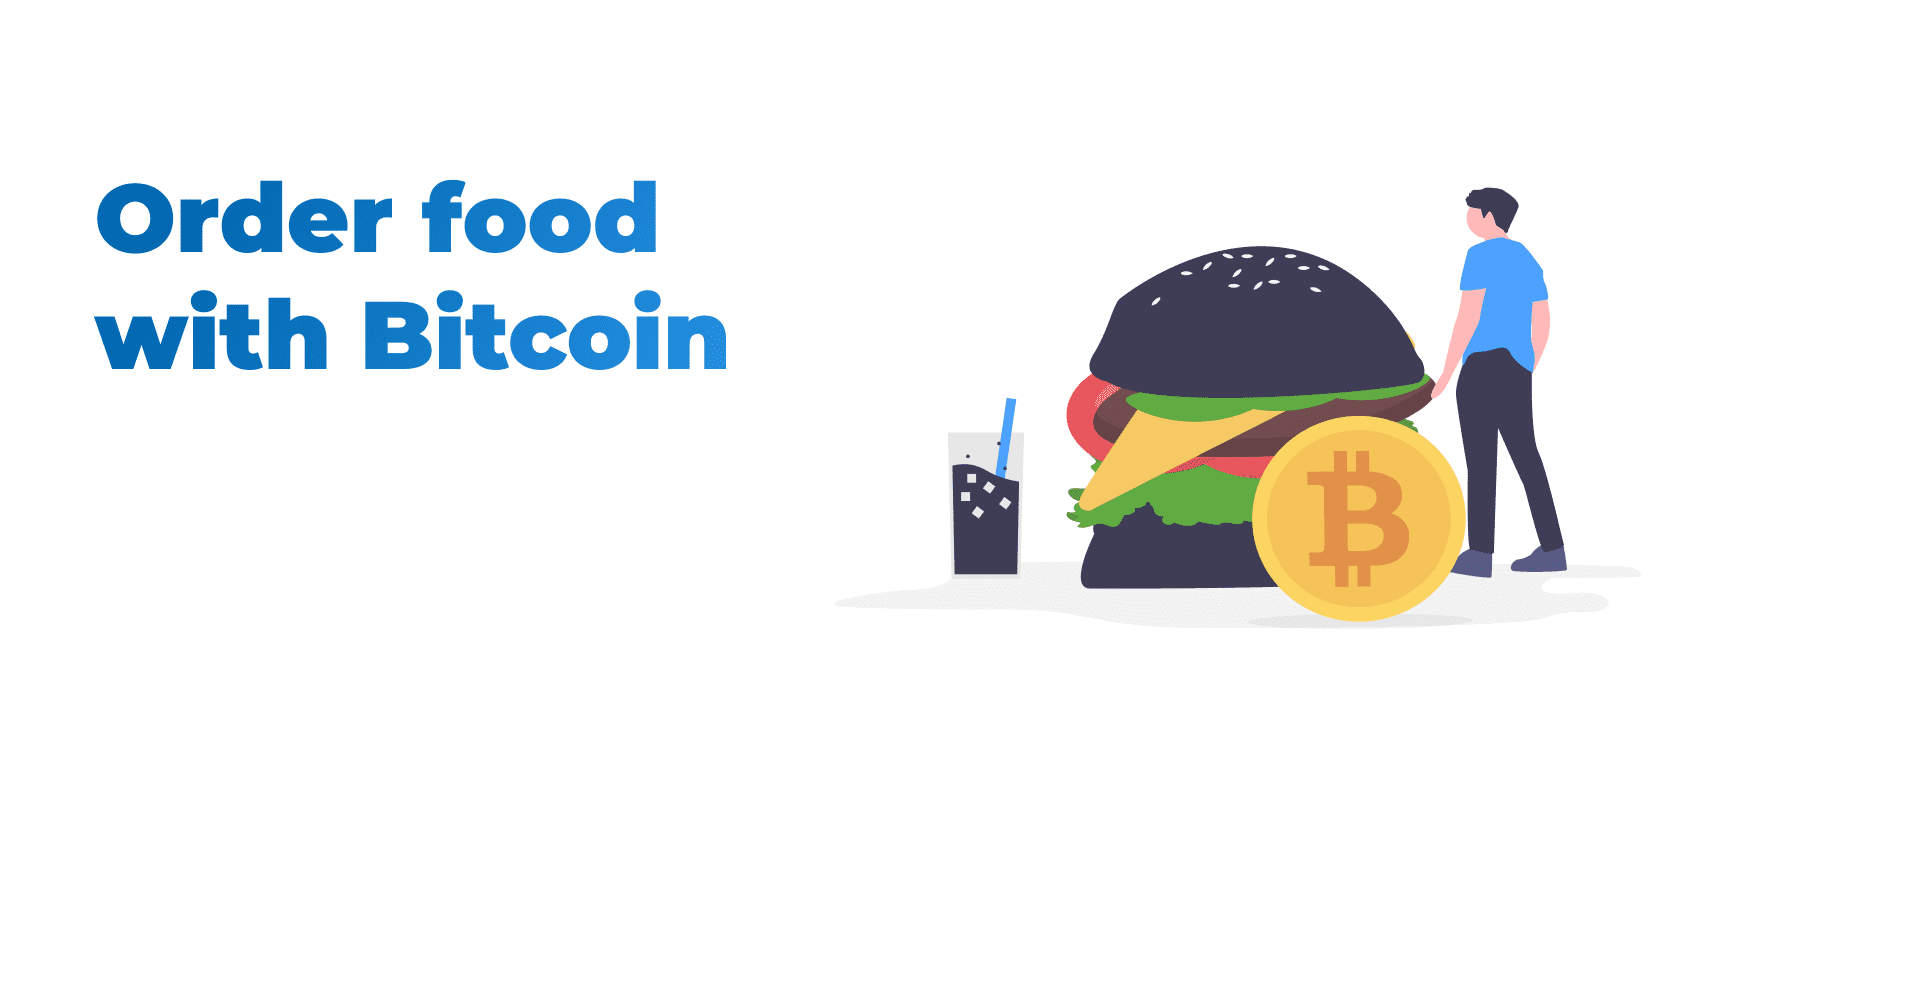 trastra, cashout, buy food with, food with bitcoin, buy crypto, crypto, buy cryptocurrency, cryptocurrency, food for bitcoin, crypto debit card